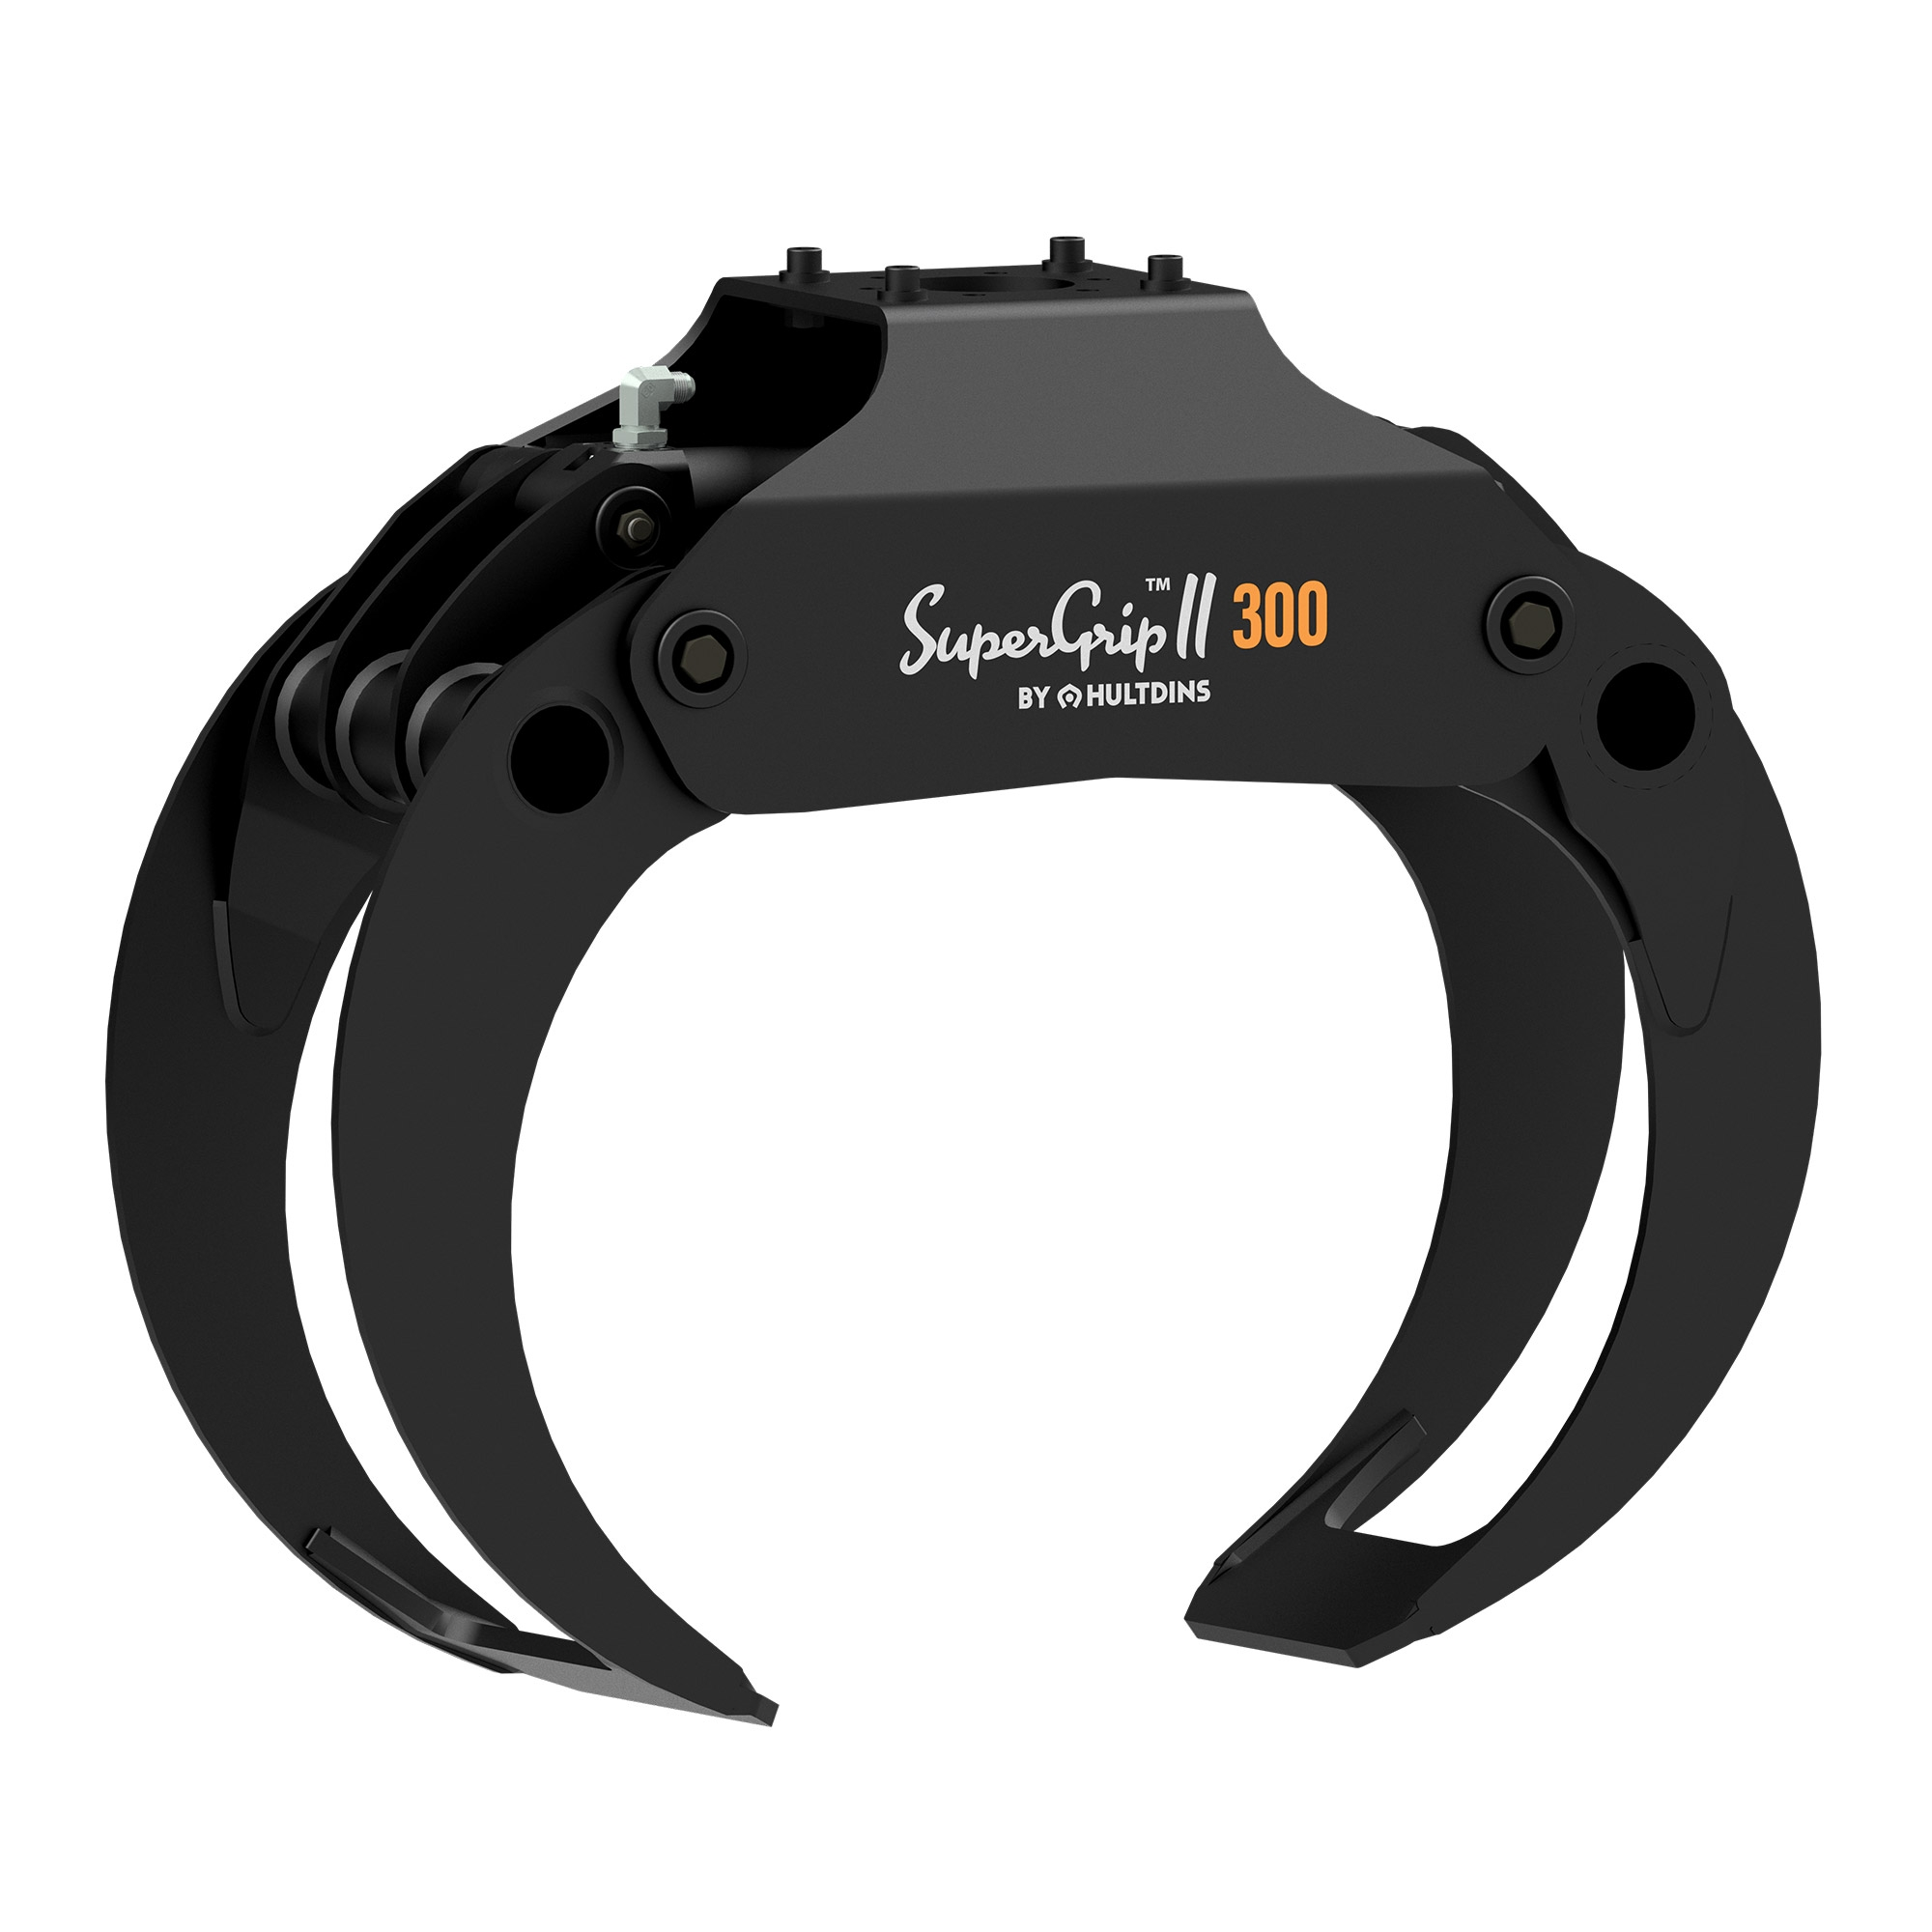 SuperGrip II 300